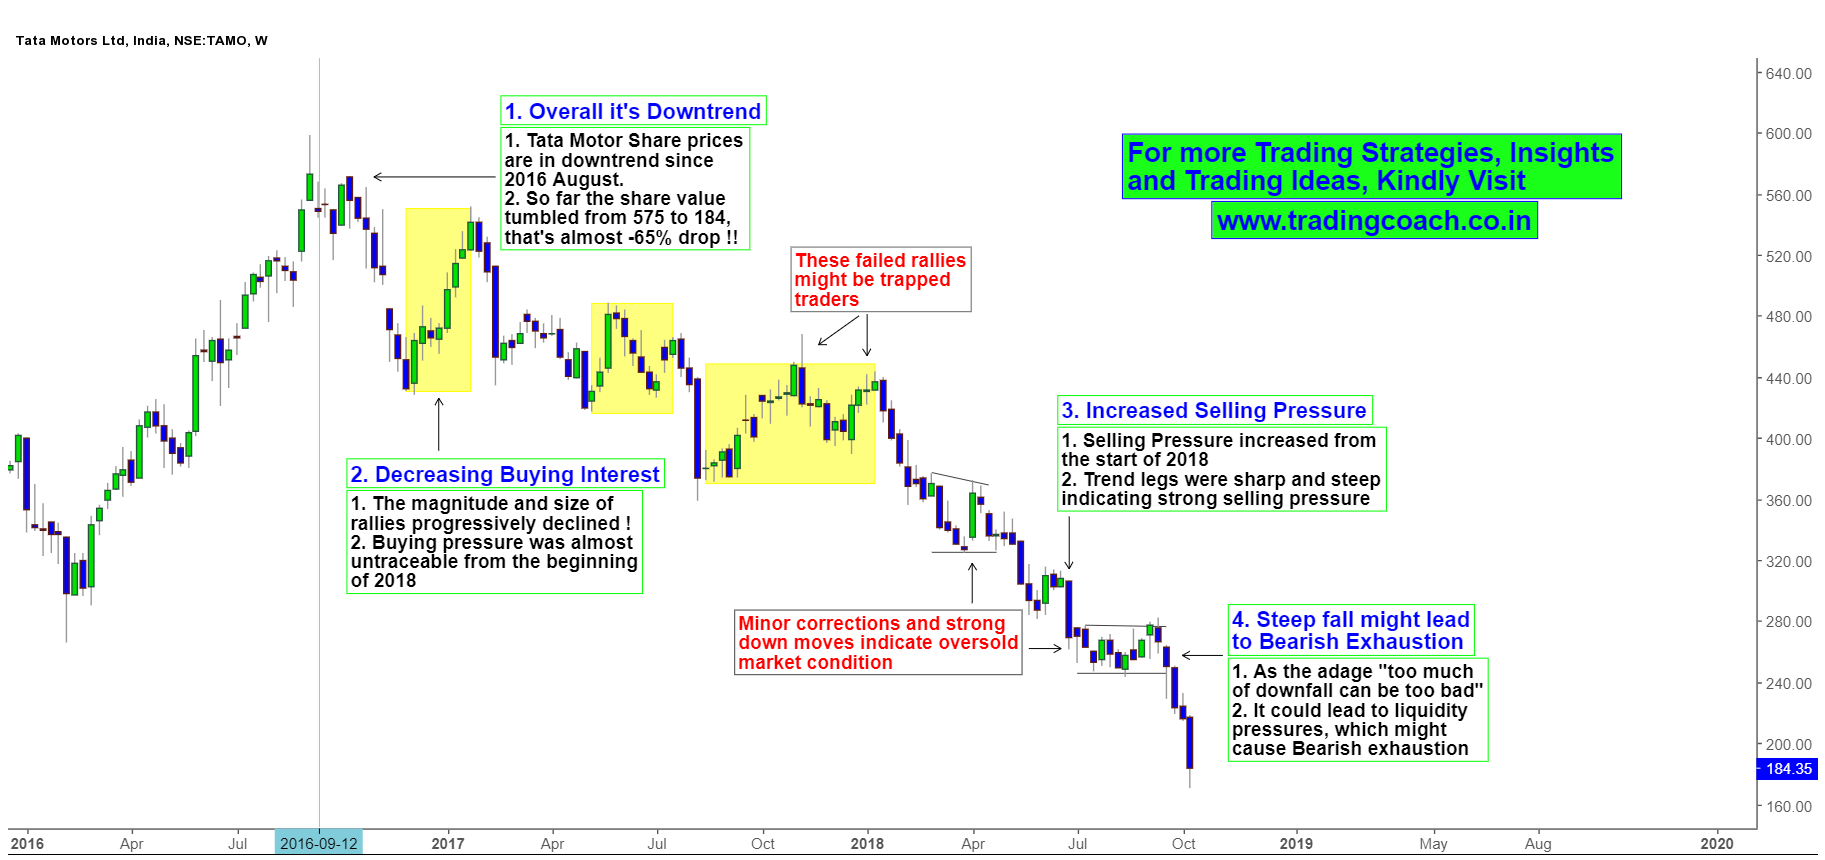 Reviewing the Downtrend of Tata Motors using Price action on Weekly chart